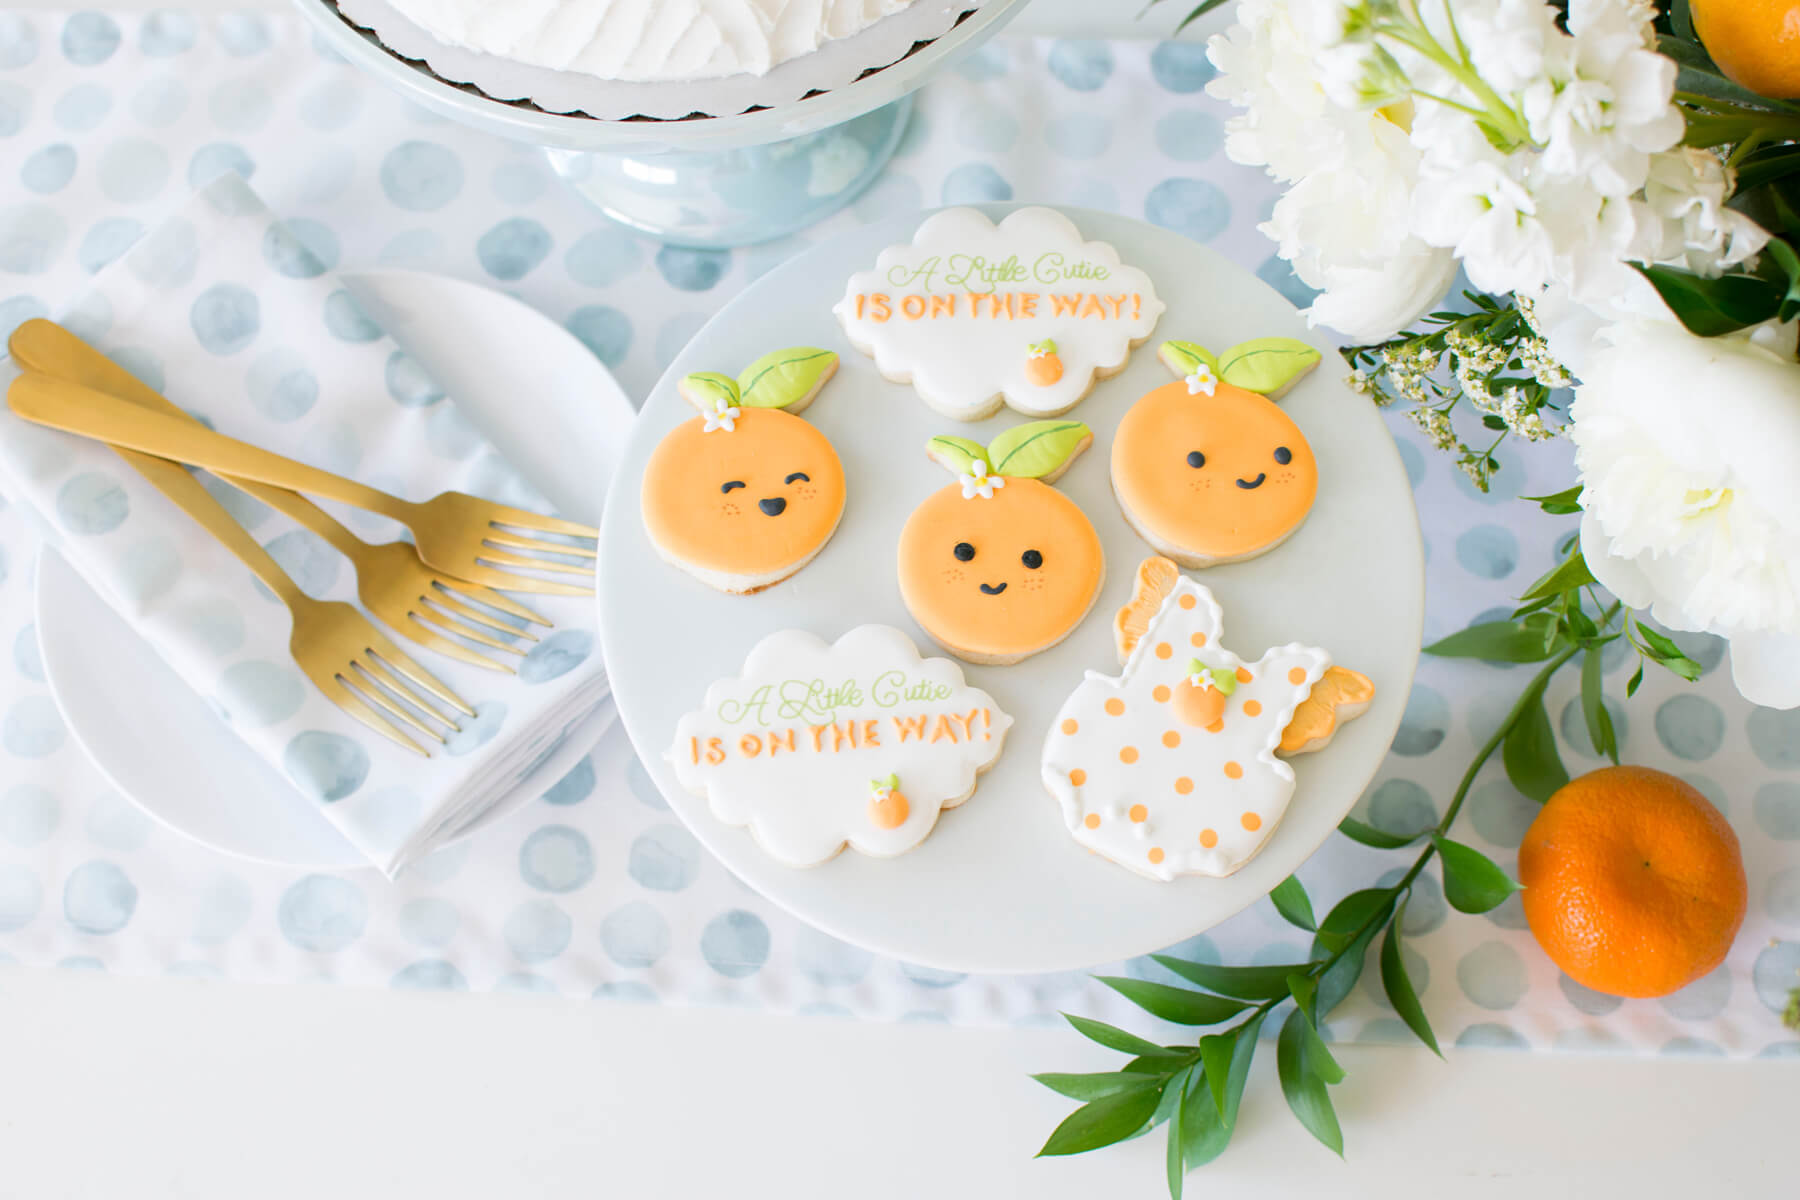 Dessert Cookies Flowers Tablerunner Napkins Forks from Hey Cutie Baby Shower styled by Twinkle Twinkle Little Party | Black Twine